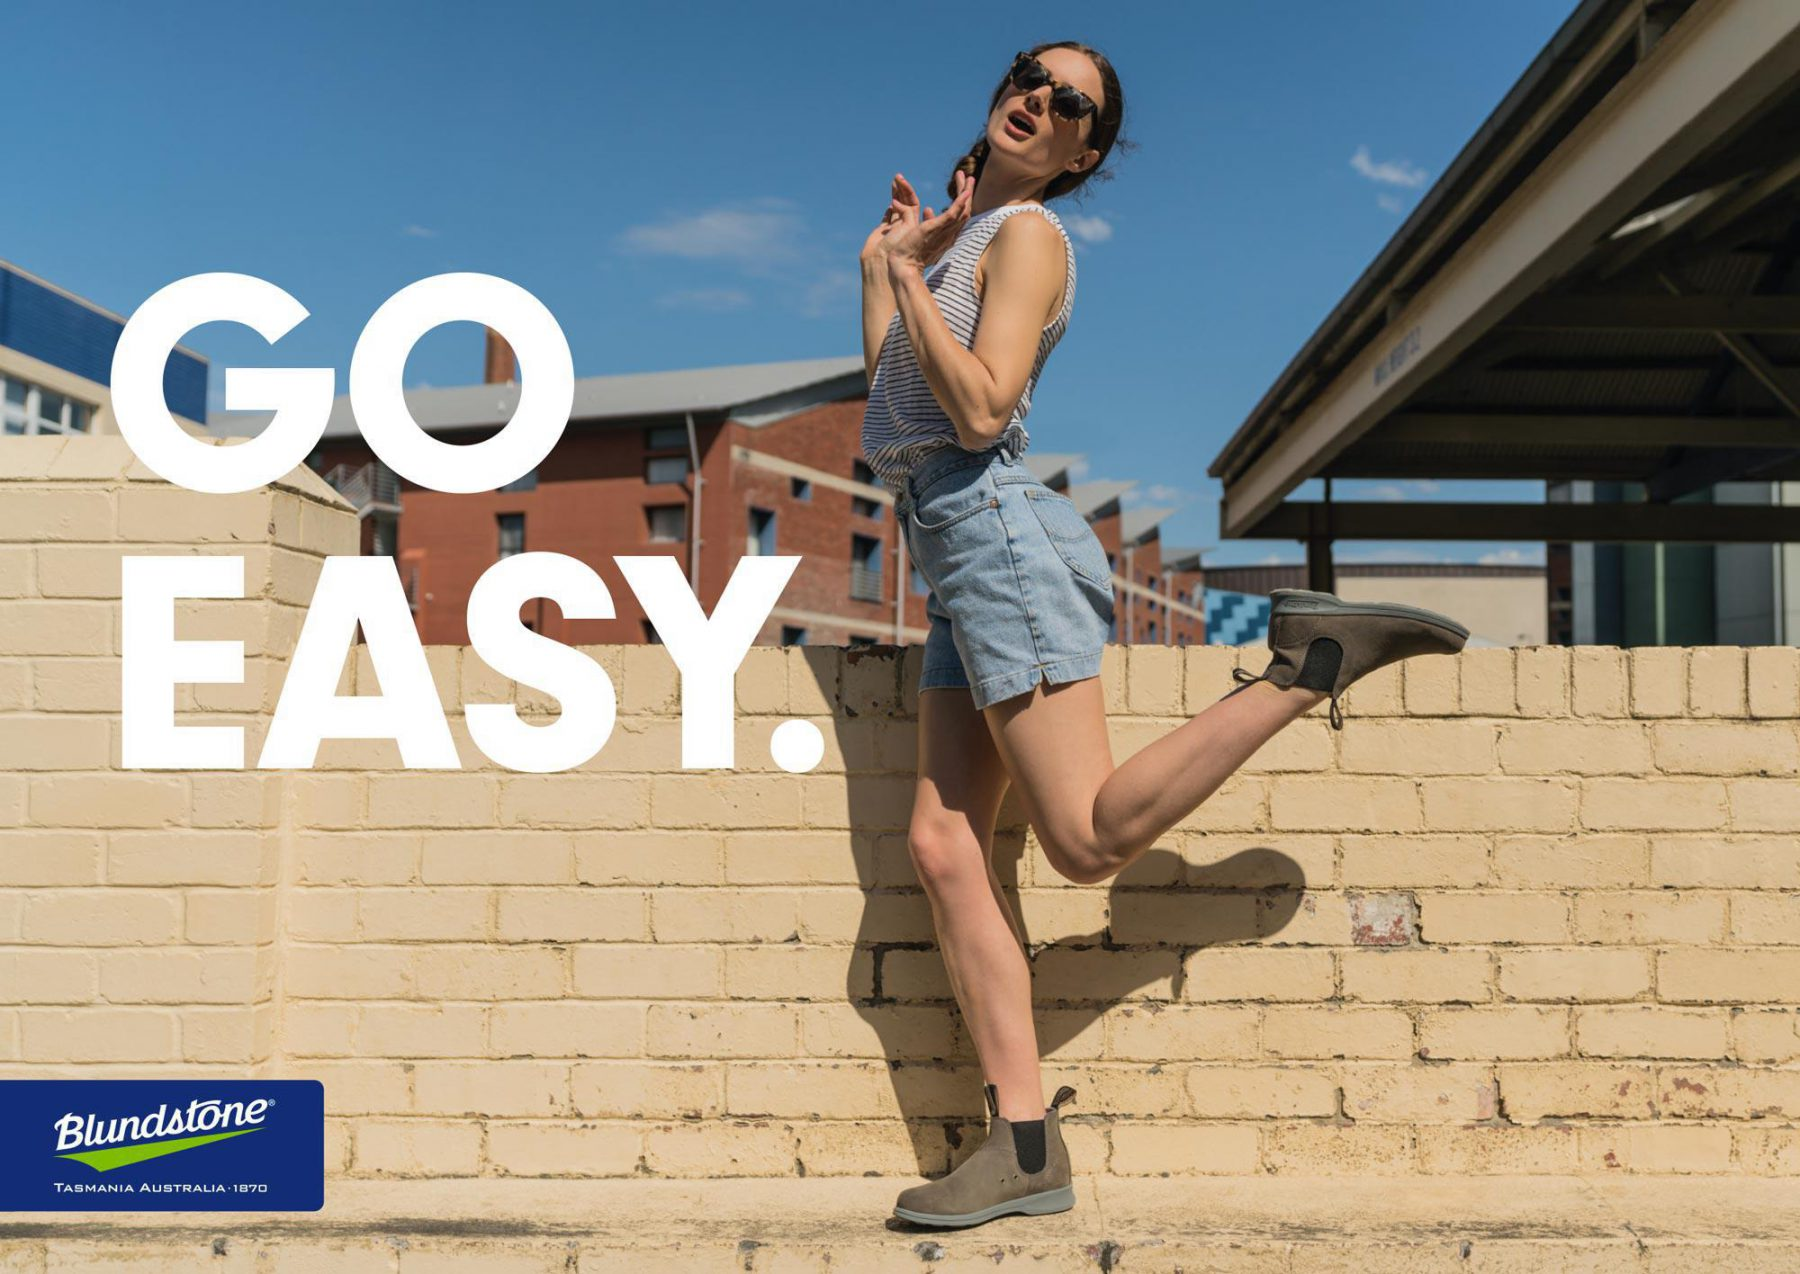 Poster with girl wearing Blundstone Summer Boots and text: Go Easy